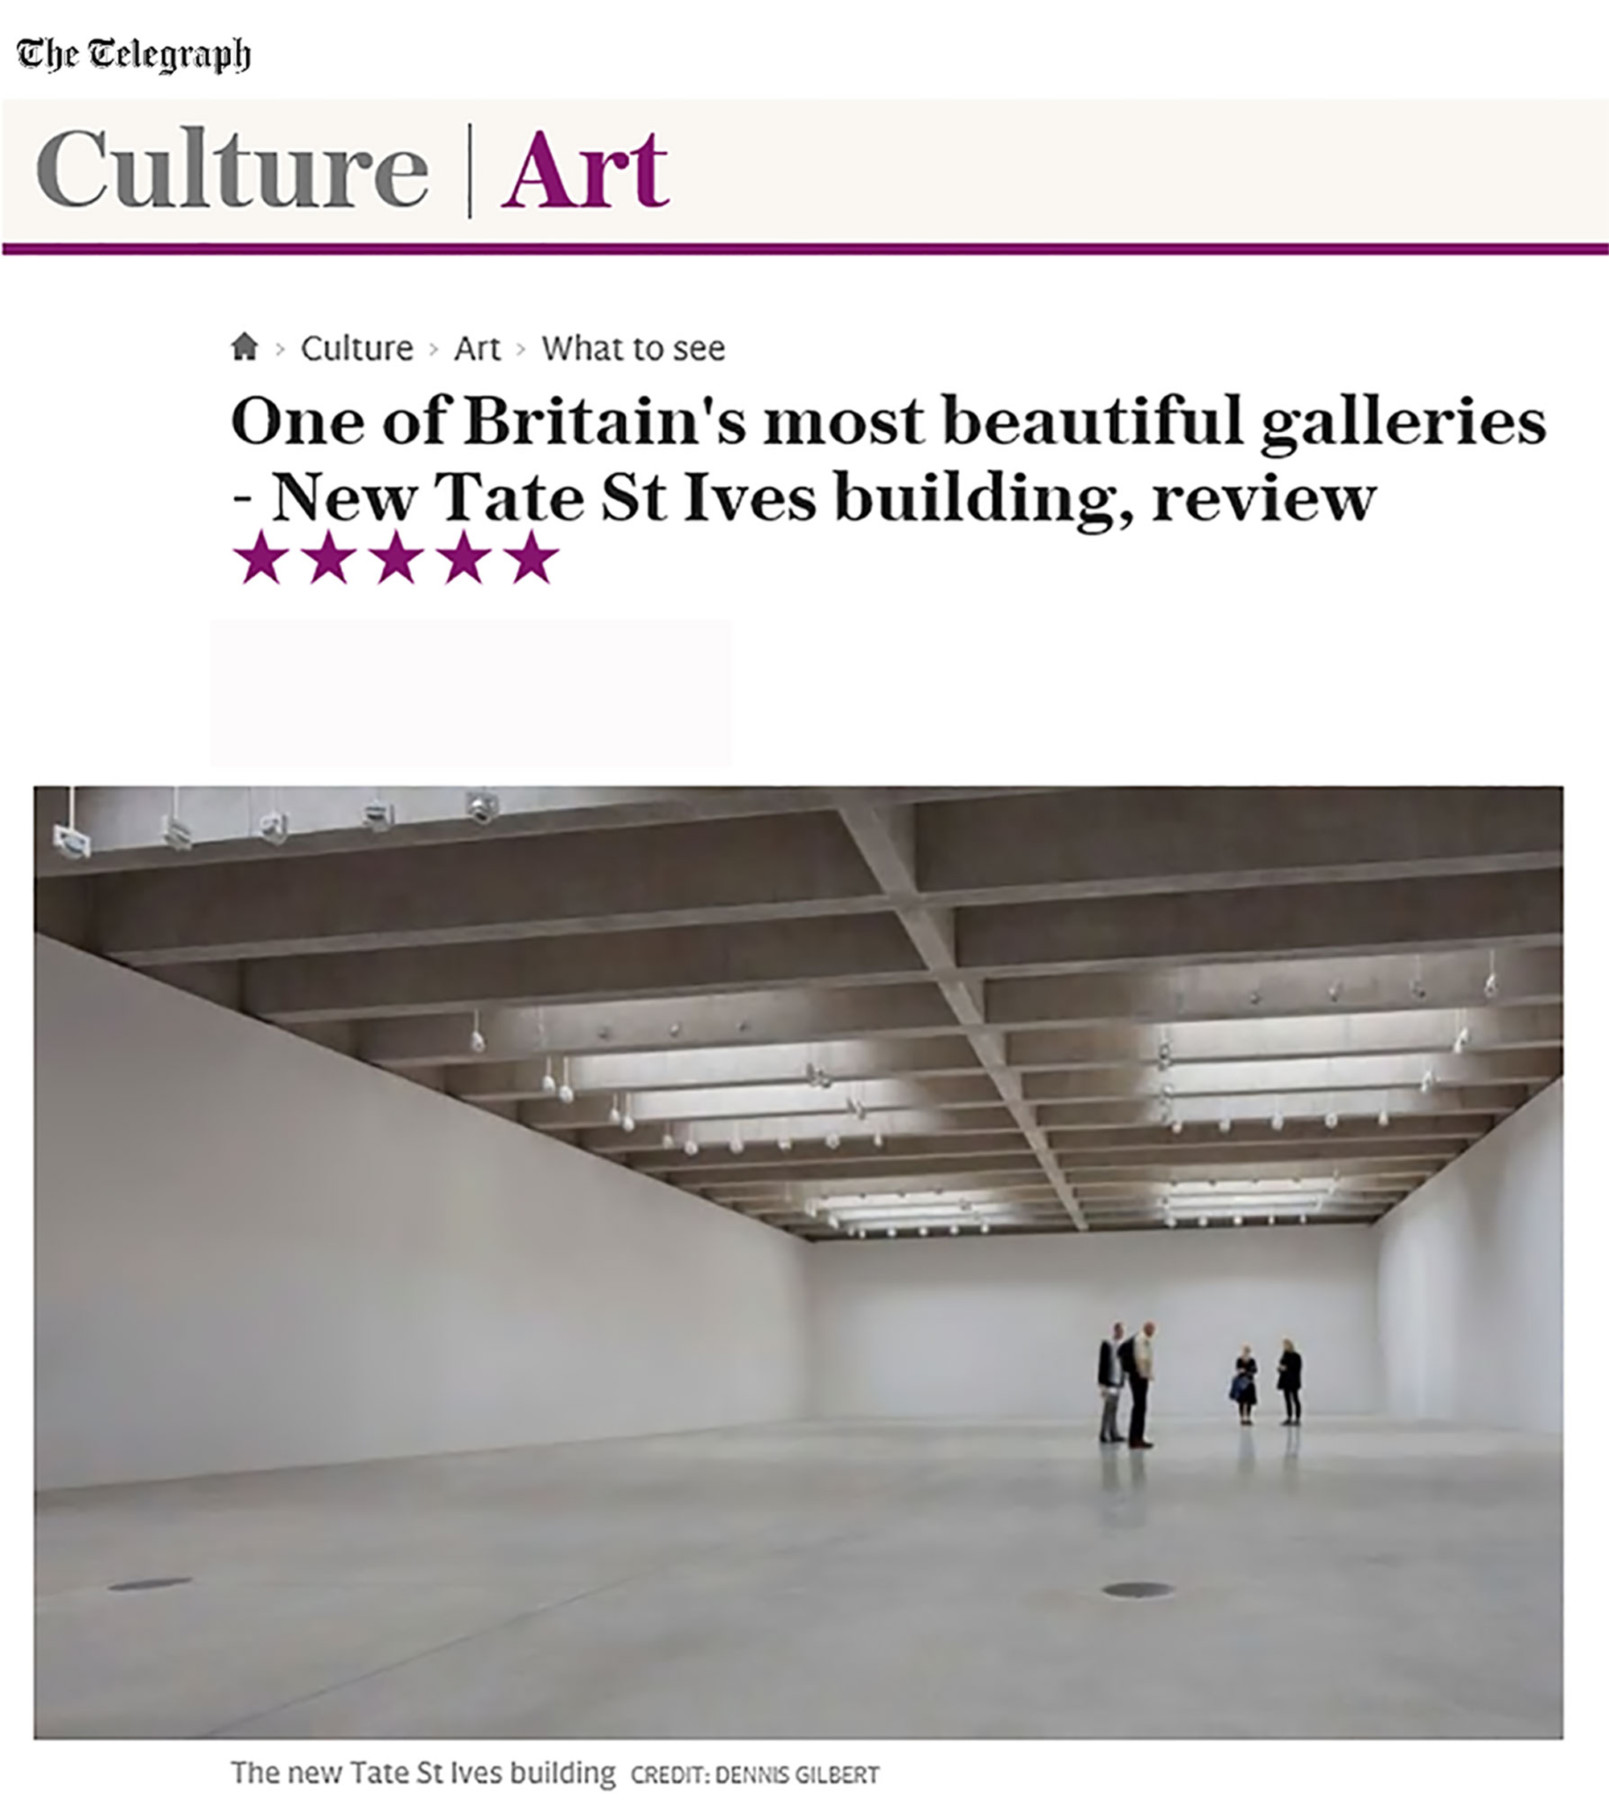 Jamie-Fobert-Architects-Telegraph-Online-Magazine-Tate-St-Ives-Cultural-Gallery-Modern-Contemporary-News-Project-Press-Article